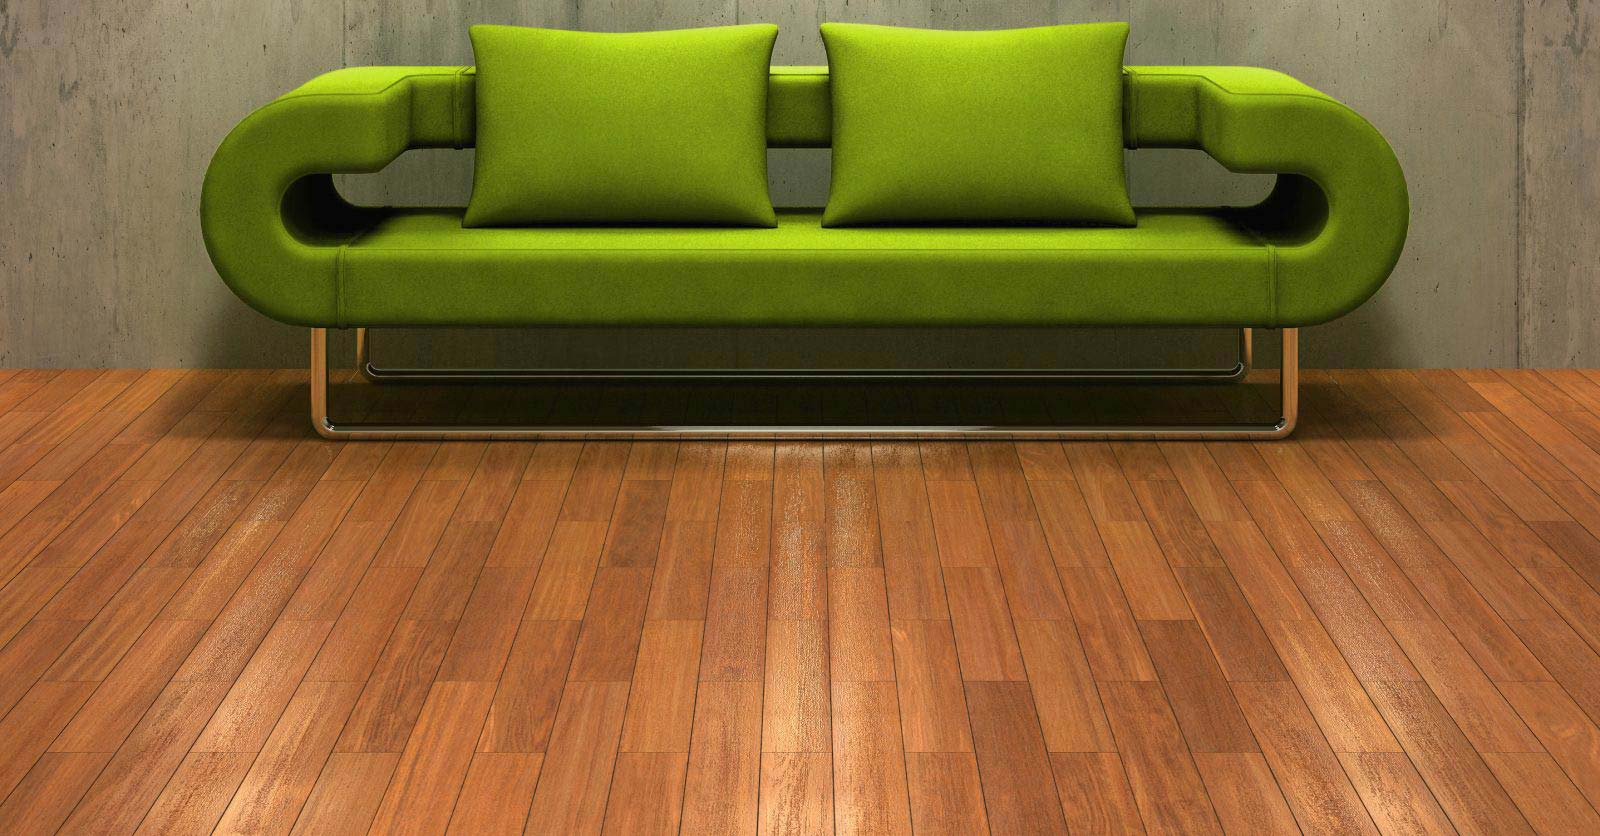 Cleaning Wood Floors: A Simple How To